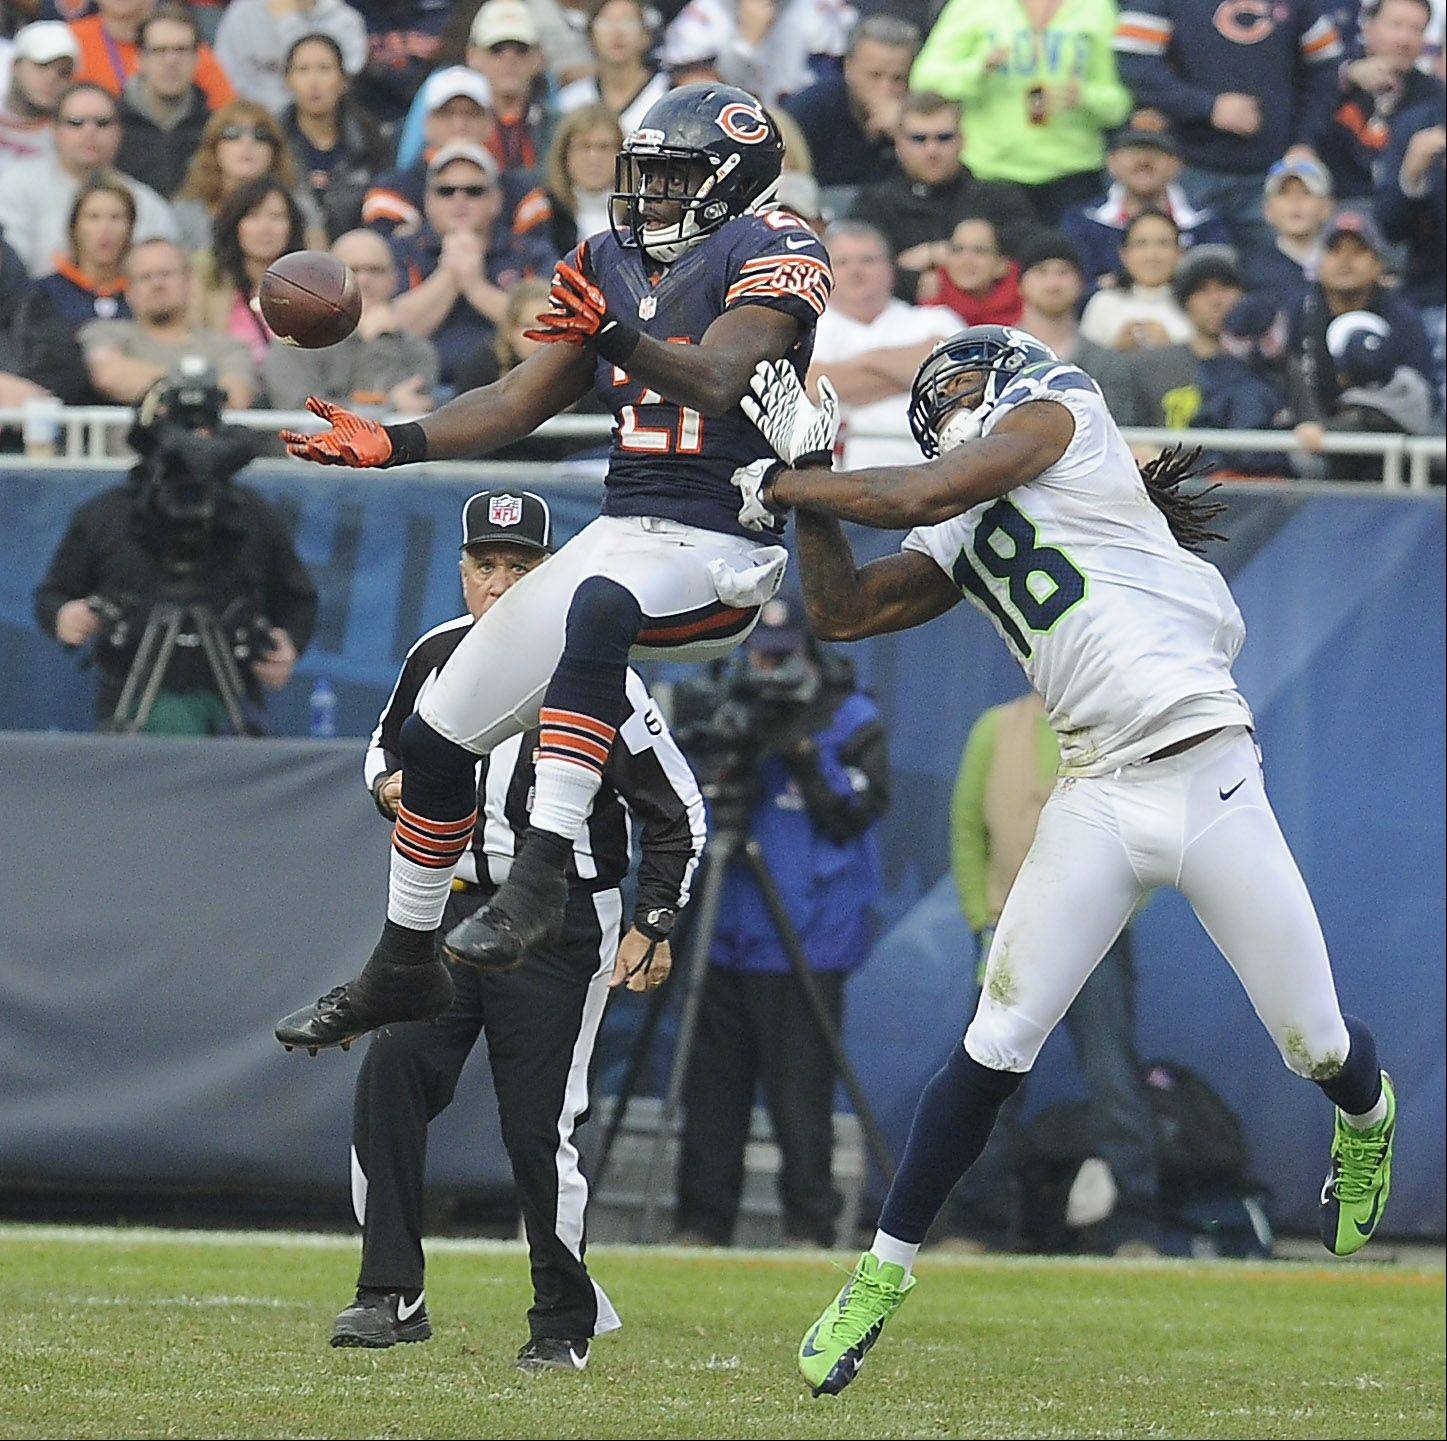 Bears Major Wright breaks up a pass intended for Seahawks Sidney Rice in the 4th quarter as the Bears ended up losing to the Seahawks in overtime at Soldier Field.